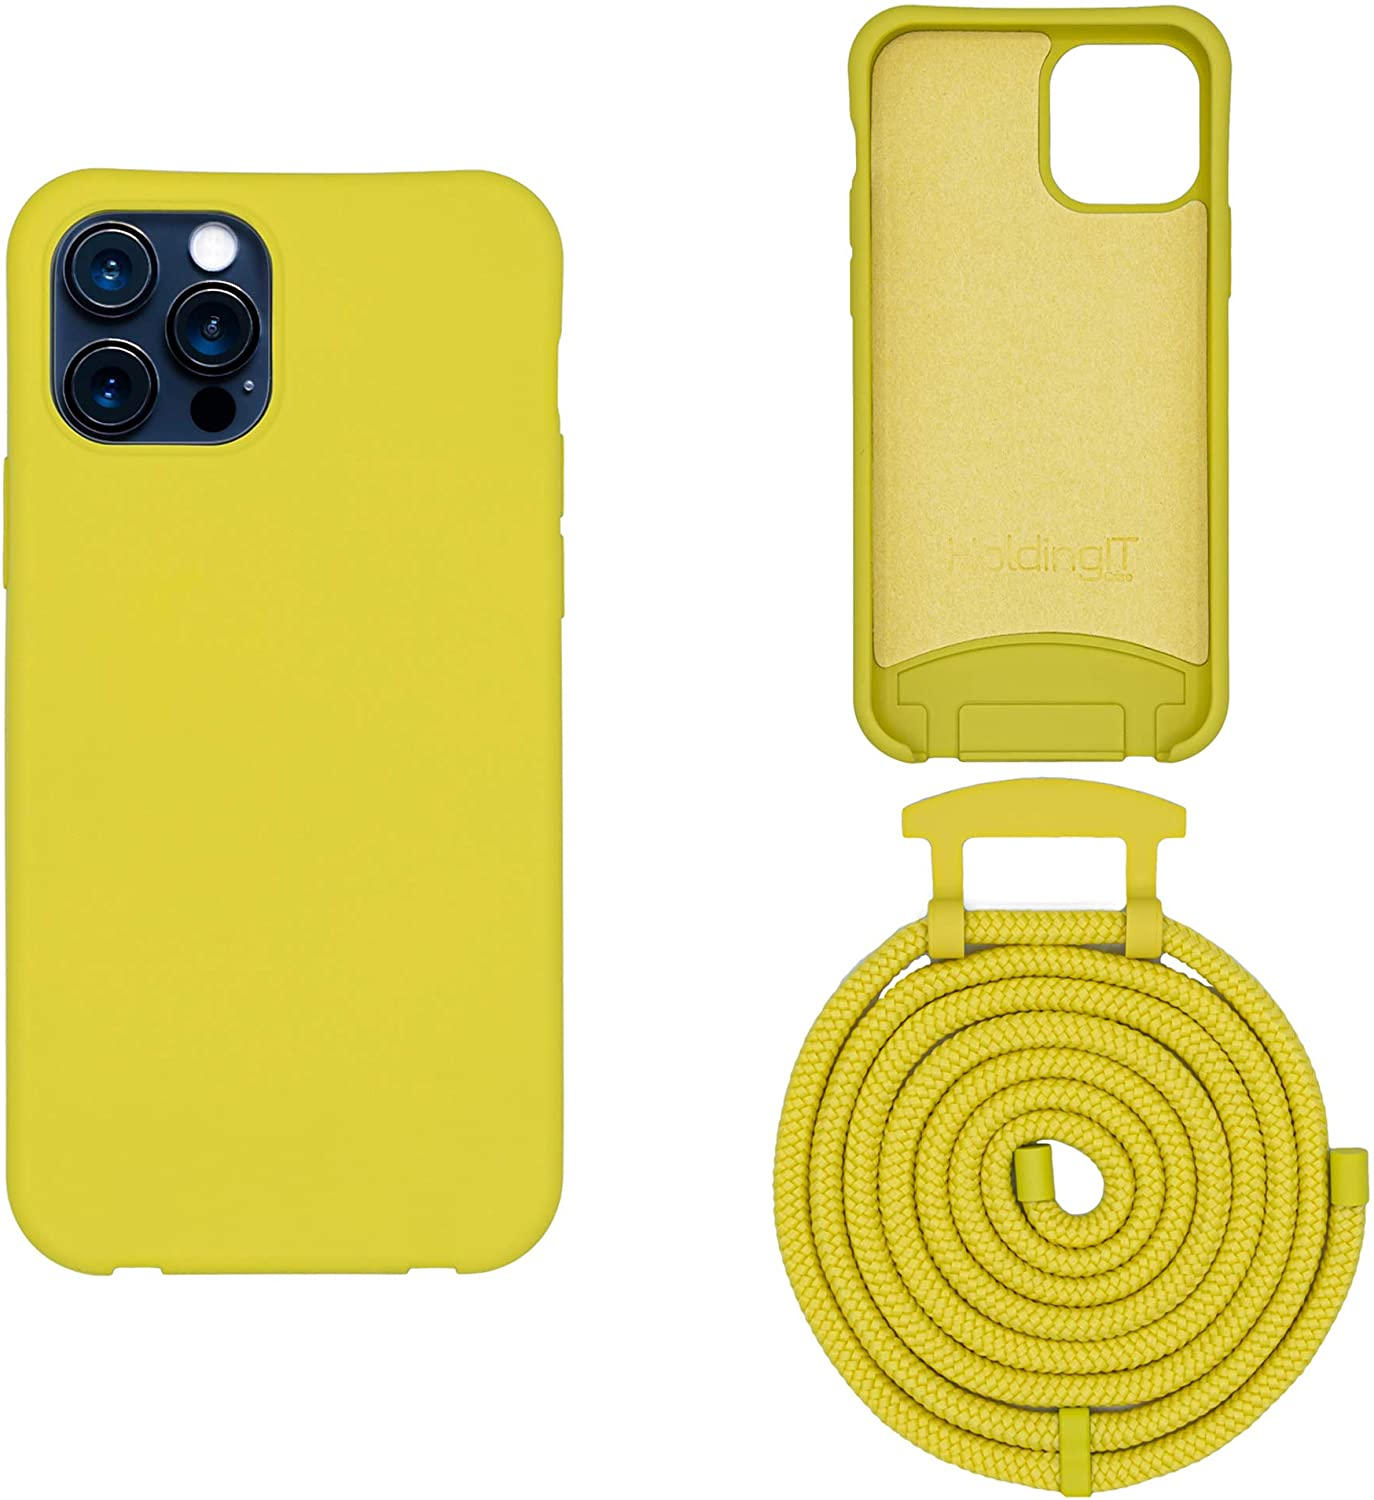 HoldingIT Crossbody Phone Case with Detachable Lanyard Compatible with iPhone X/XS, XS Max, XR, 2-in-1 Hands Free iPhone Cover with Drop Protection, Adjustable Rope